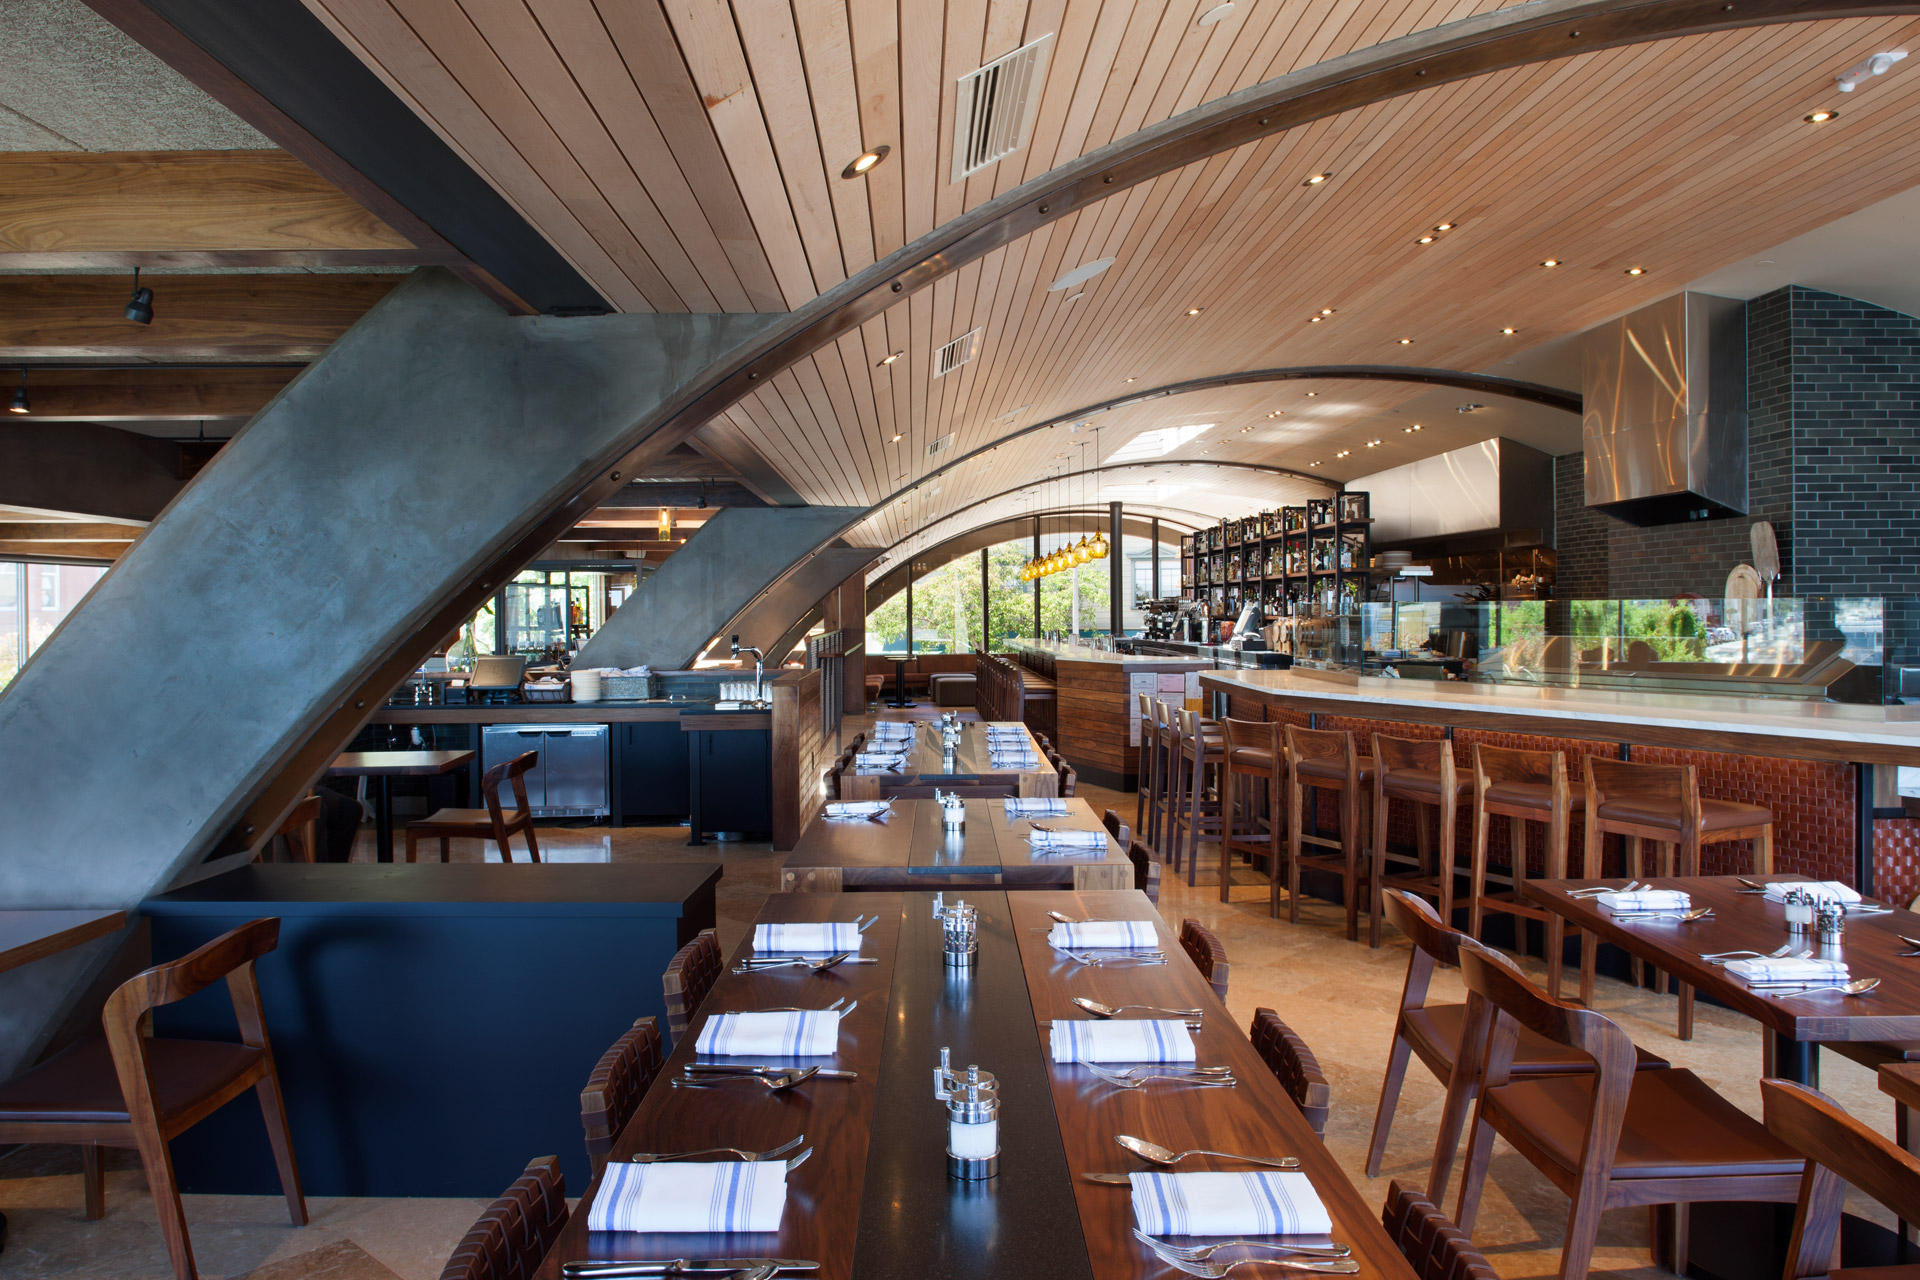 A restaurant with several dining brown wooden dining tables extended from the center, with white and light blue striped napkins and place settings. An open kitchen with glossy black tile is on the right, and further back is the bar with hanging yellow pendants. Curved concrete columns extend from the left over to the ceiling. The ceiling is curved and made of wooden brown slats, resembling a barrel. Barrel House Tavern, Sausalito, California